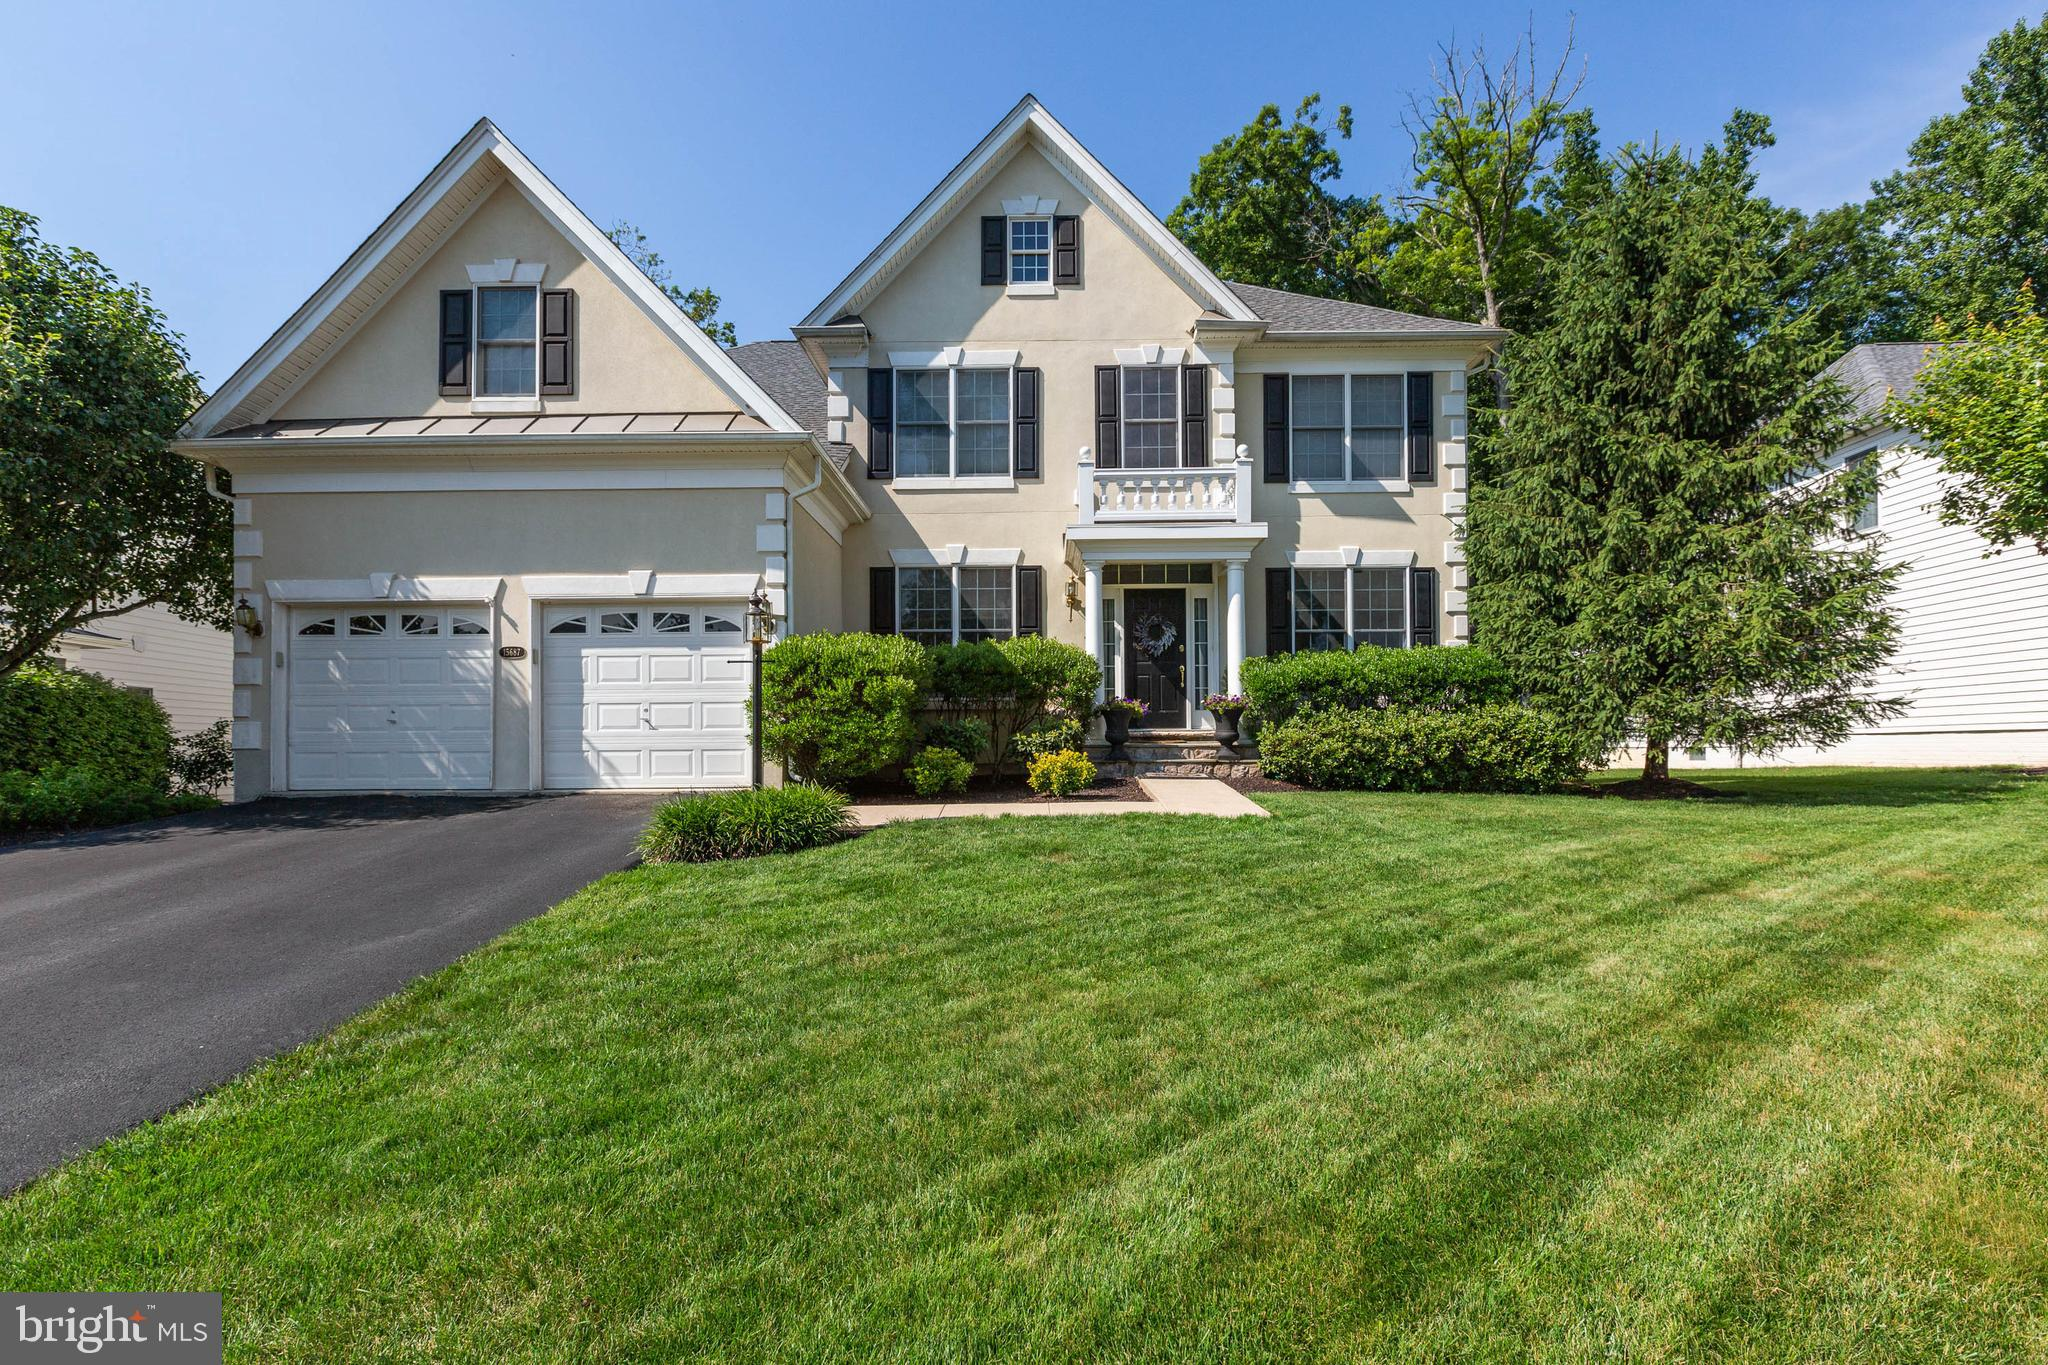 Gorgeous Ellsworth model~5,208 sq feet  4 bedrooms & 3.5 baths with an amazing 18 X 36 heated inground pool and hot tub~ Private tree save on .30 acre fenced lot~ Upgraded 24 X 24 tile in Kitchen, Laundry and morning room ~ Gourmet Kitchen with custom stone/glass back splash, Granite counters, Stainless Steel appliances, Cherry Cabinets, Breakfast bar and table area~ Wall of windows in Sunroom overlooking pool~ Large family room off Kitchen with gas fireplace surrounded by windows~ Main level office~ Upper level boasts huge master retreat with tray ceiling, sitting area, walk in closets and luxurious master en suite~ Spacious additional bedrooms with hall bath~ Finished lower level with full bathroom, ntc bedroom or den/playroom~ Recreation area and walk up stairs to wonderful back yard~ 1 yr old Roof!!~ This home has been meticulously maintained! The community amenities include security and gated access, outdoor pools and indoor pool, exercise room, club house, tennis courts, basketball courts, tot lots, miles of walking/biking trails and much more.  Two Arnold Palmer Signature Golf Courses. Easy and quick access to major commuter routes 15, 29, 50 and I-66 and new commuter bus service.